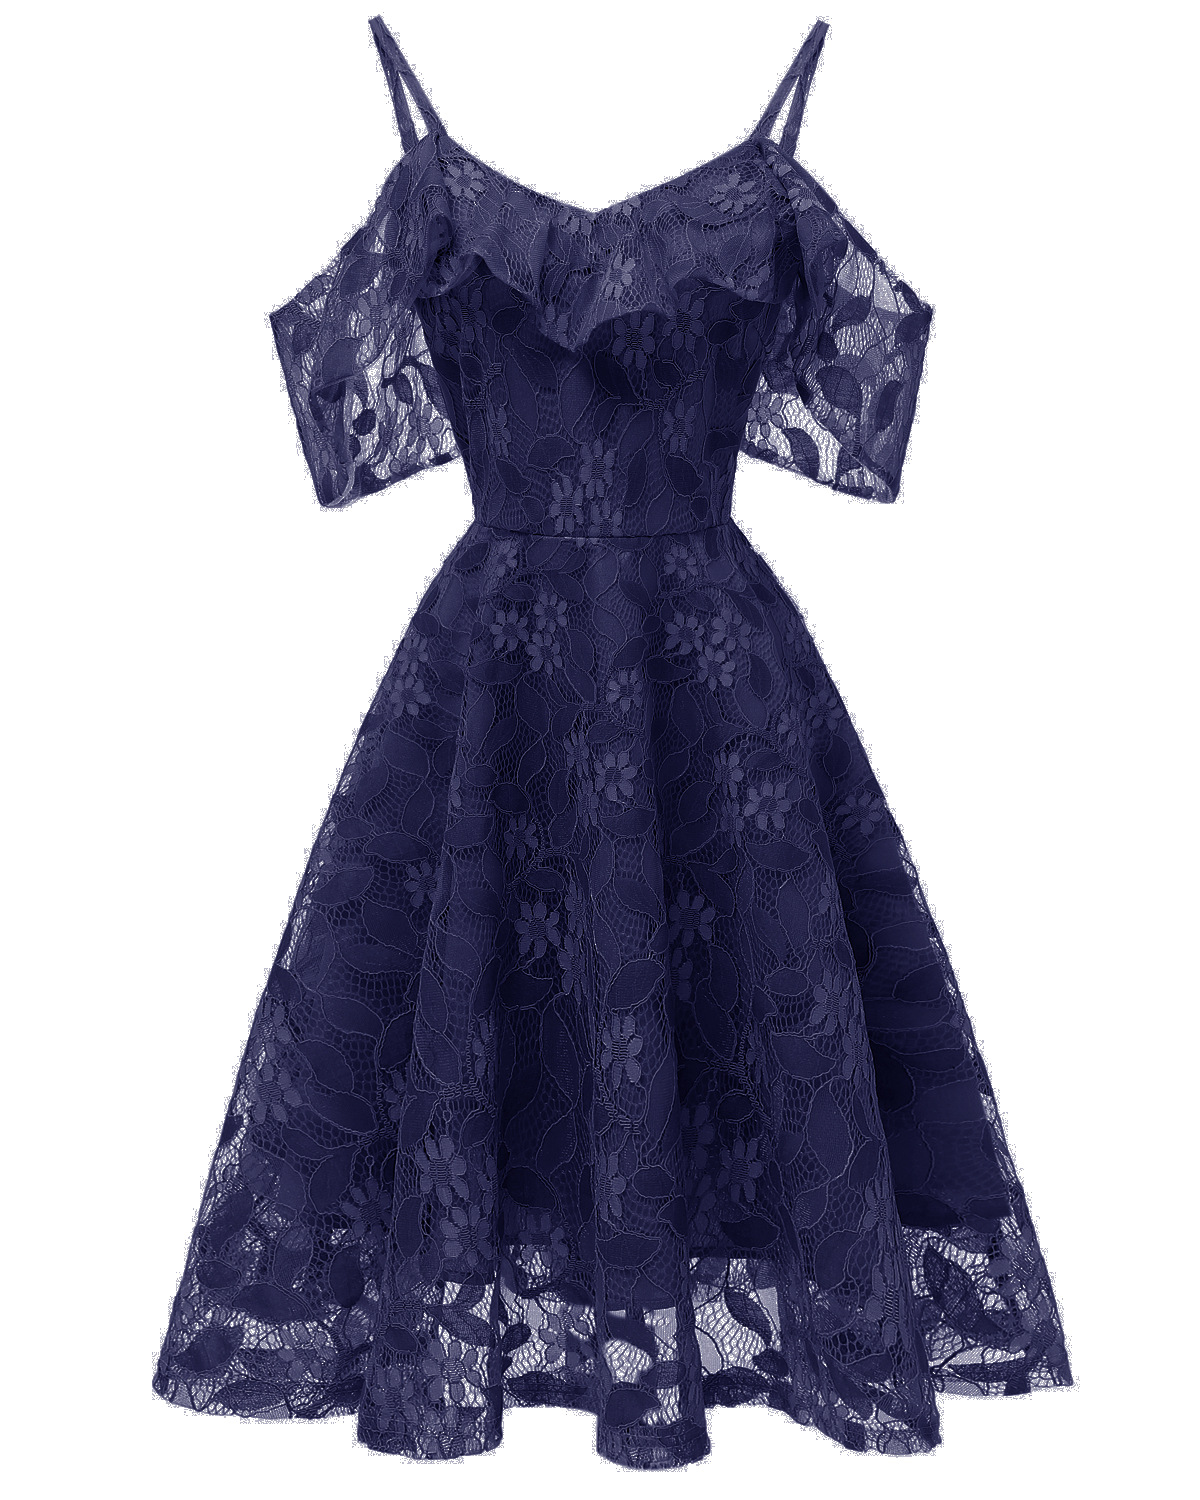 Cheap Navy Blue Short Lace Dress A Line Women Bridesmaid Party Gowns Soft Lace Homecoming Maix Dresses Cheap. Mini Party Gowns ,Short Summer Dress, Above Length pARTY gOWNS